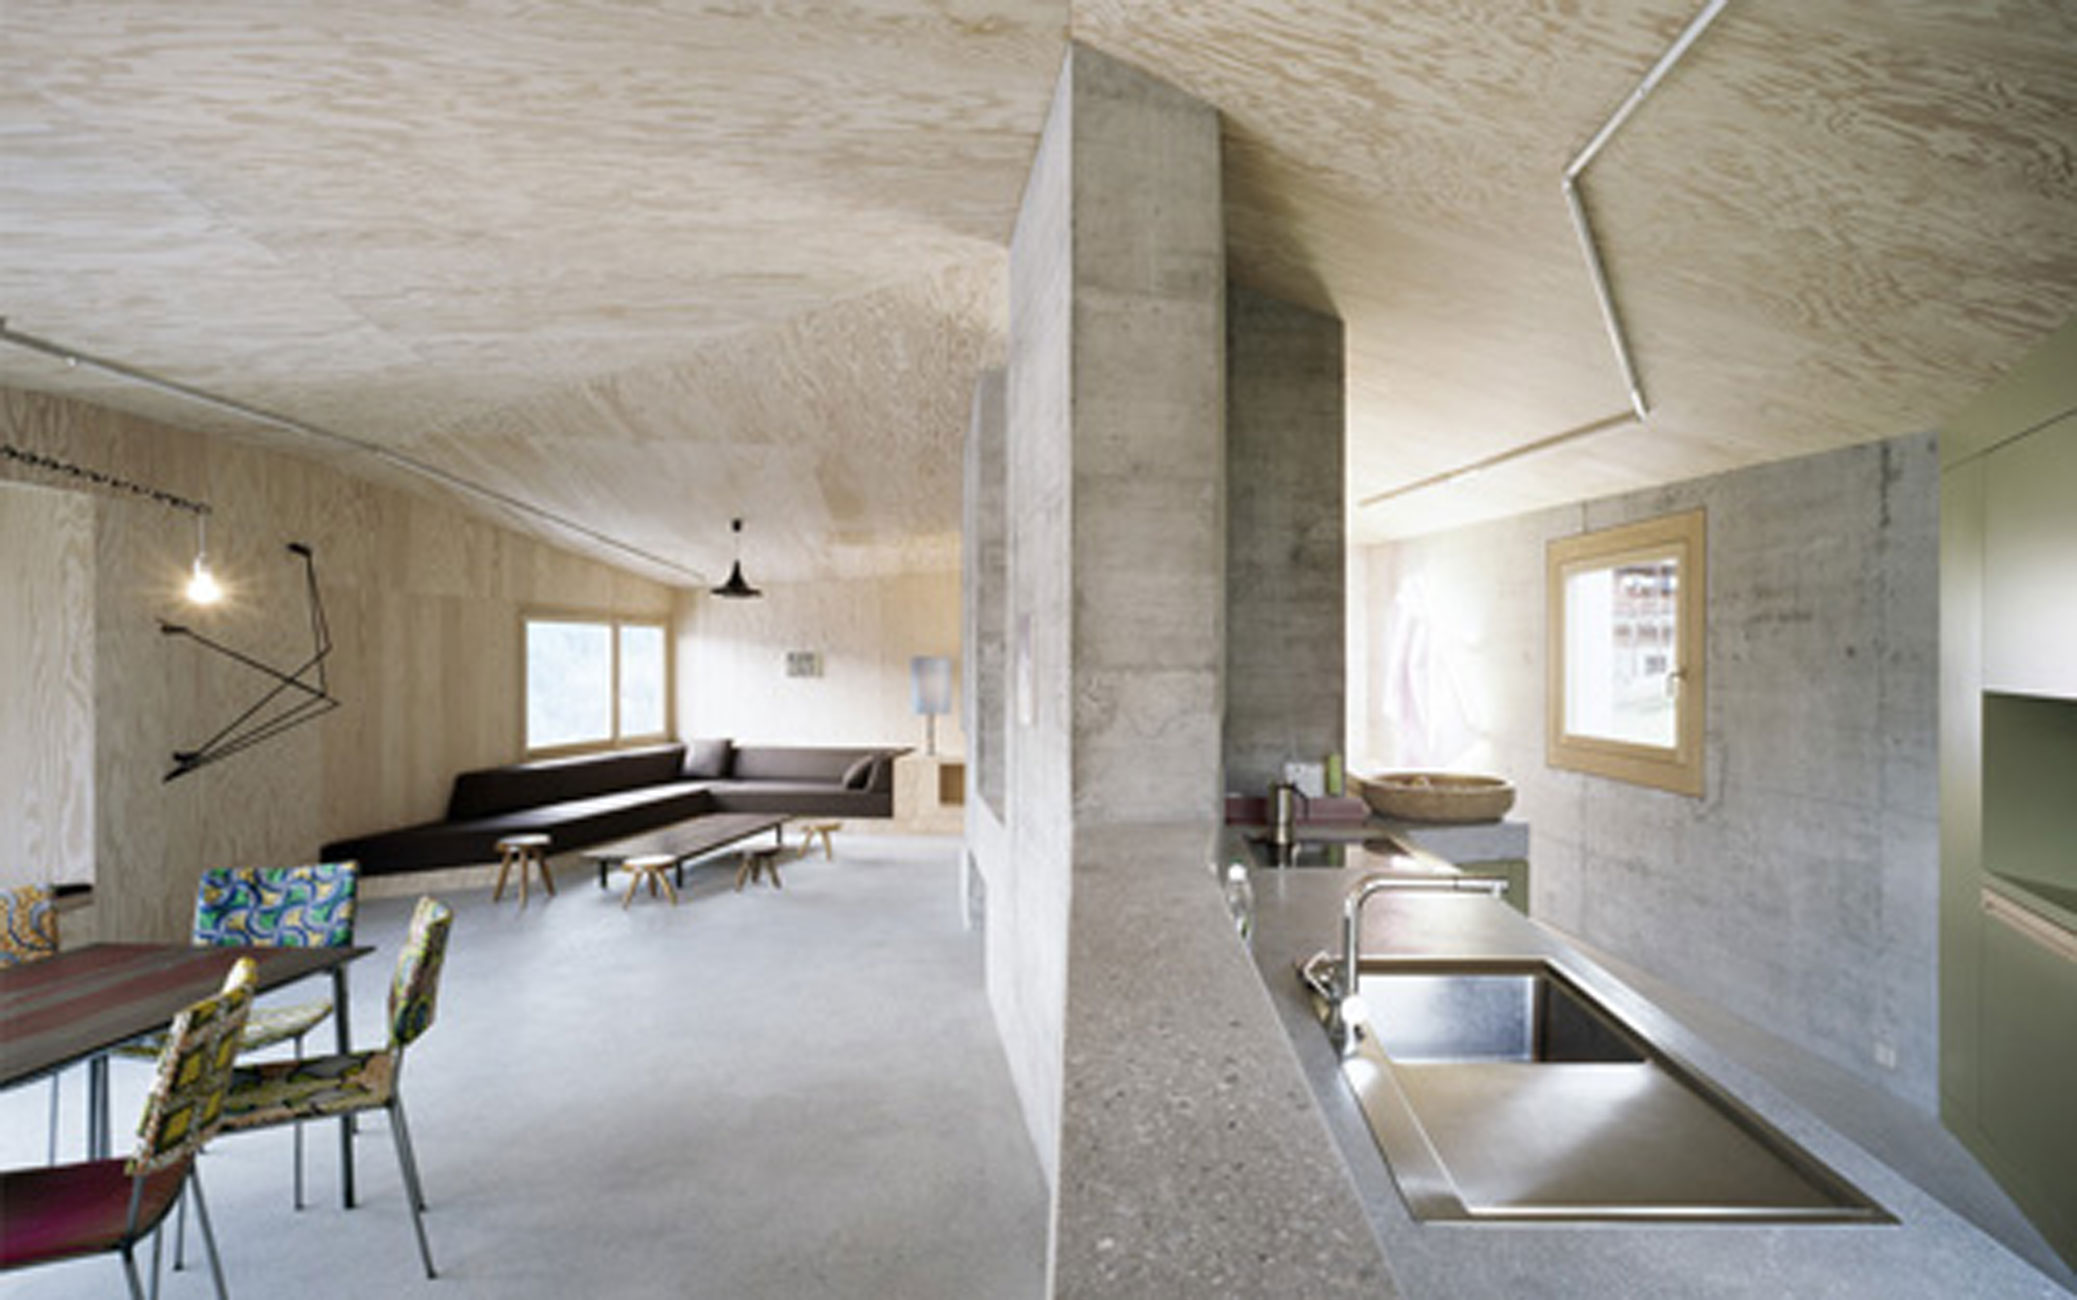 Berlin Interior Design Solid Concrete House Architecture And Minimalist Interior Design